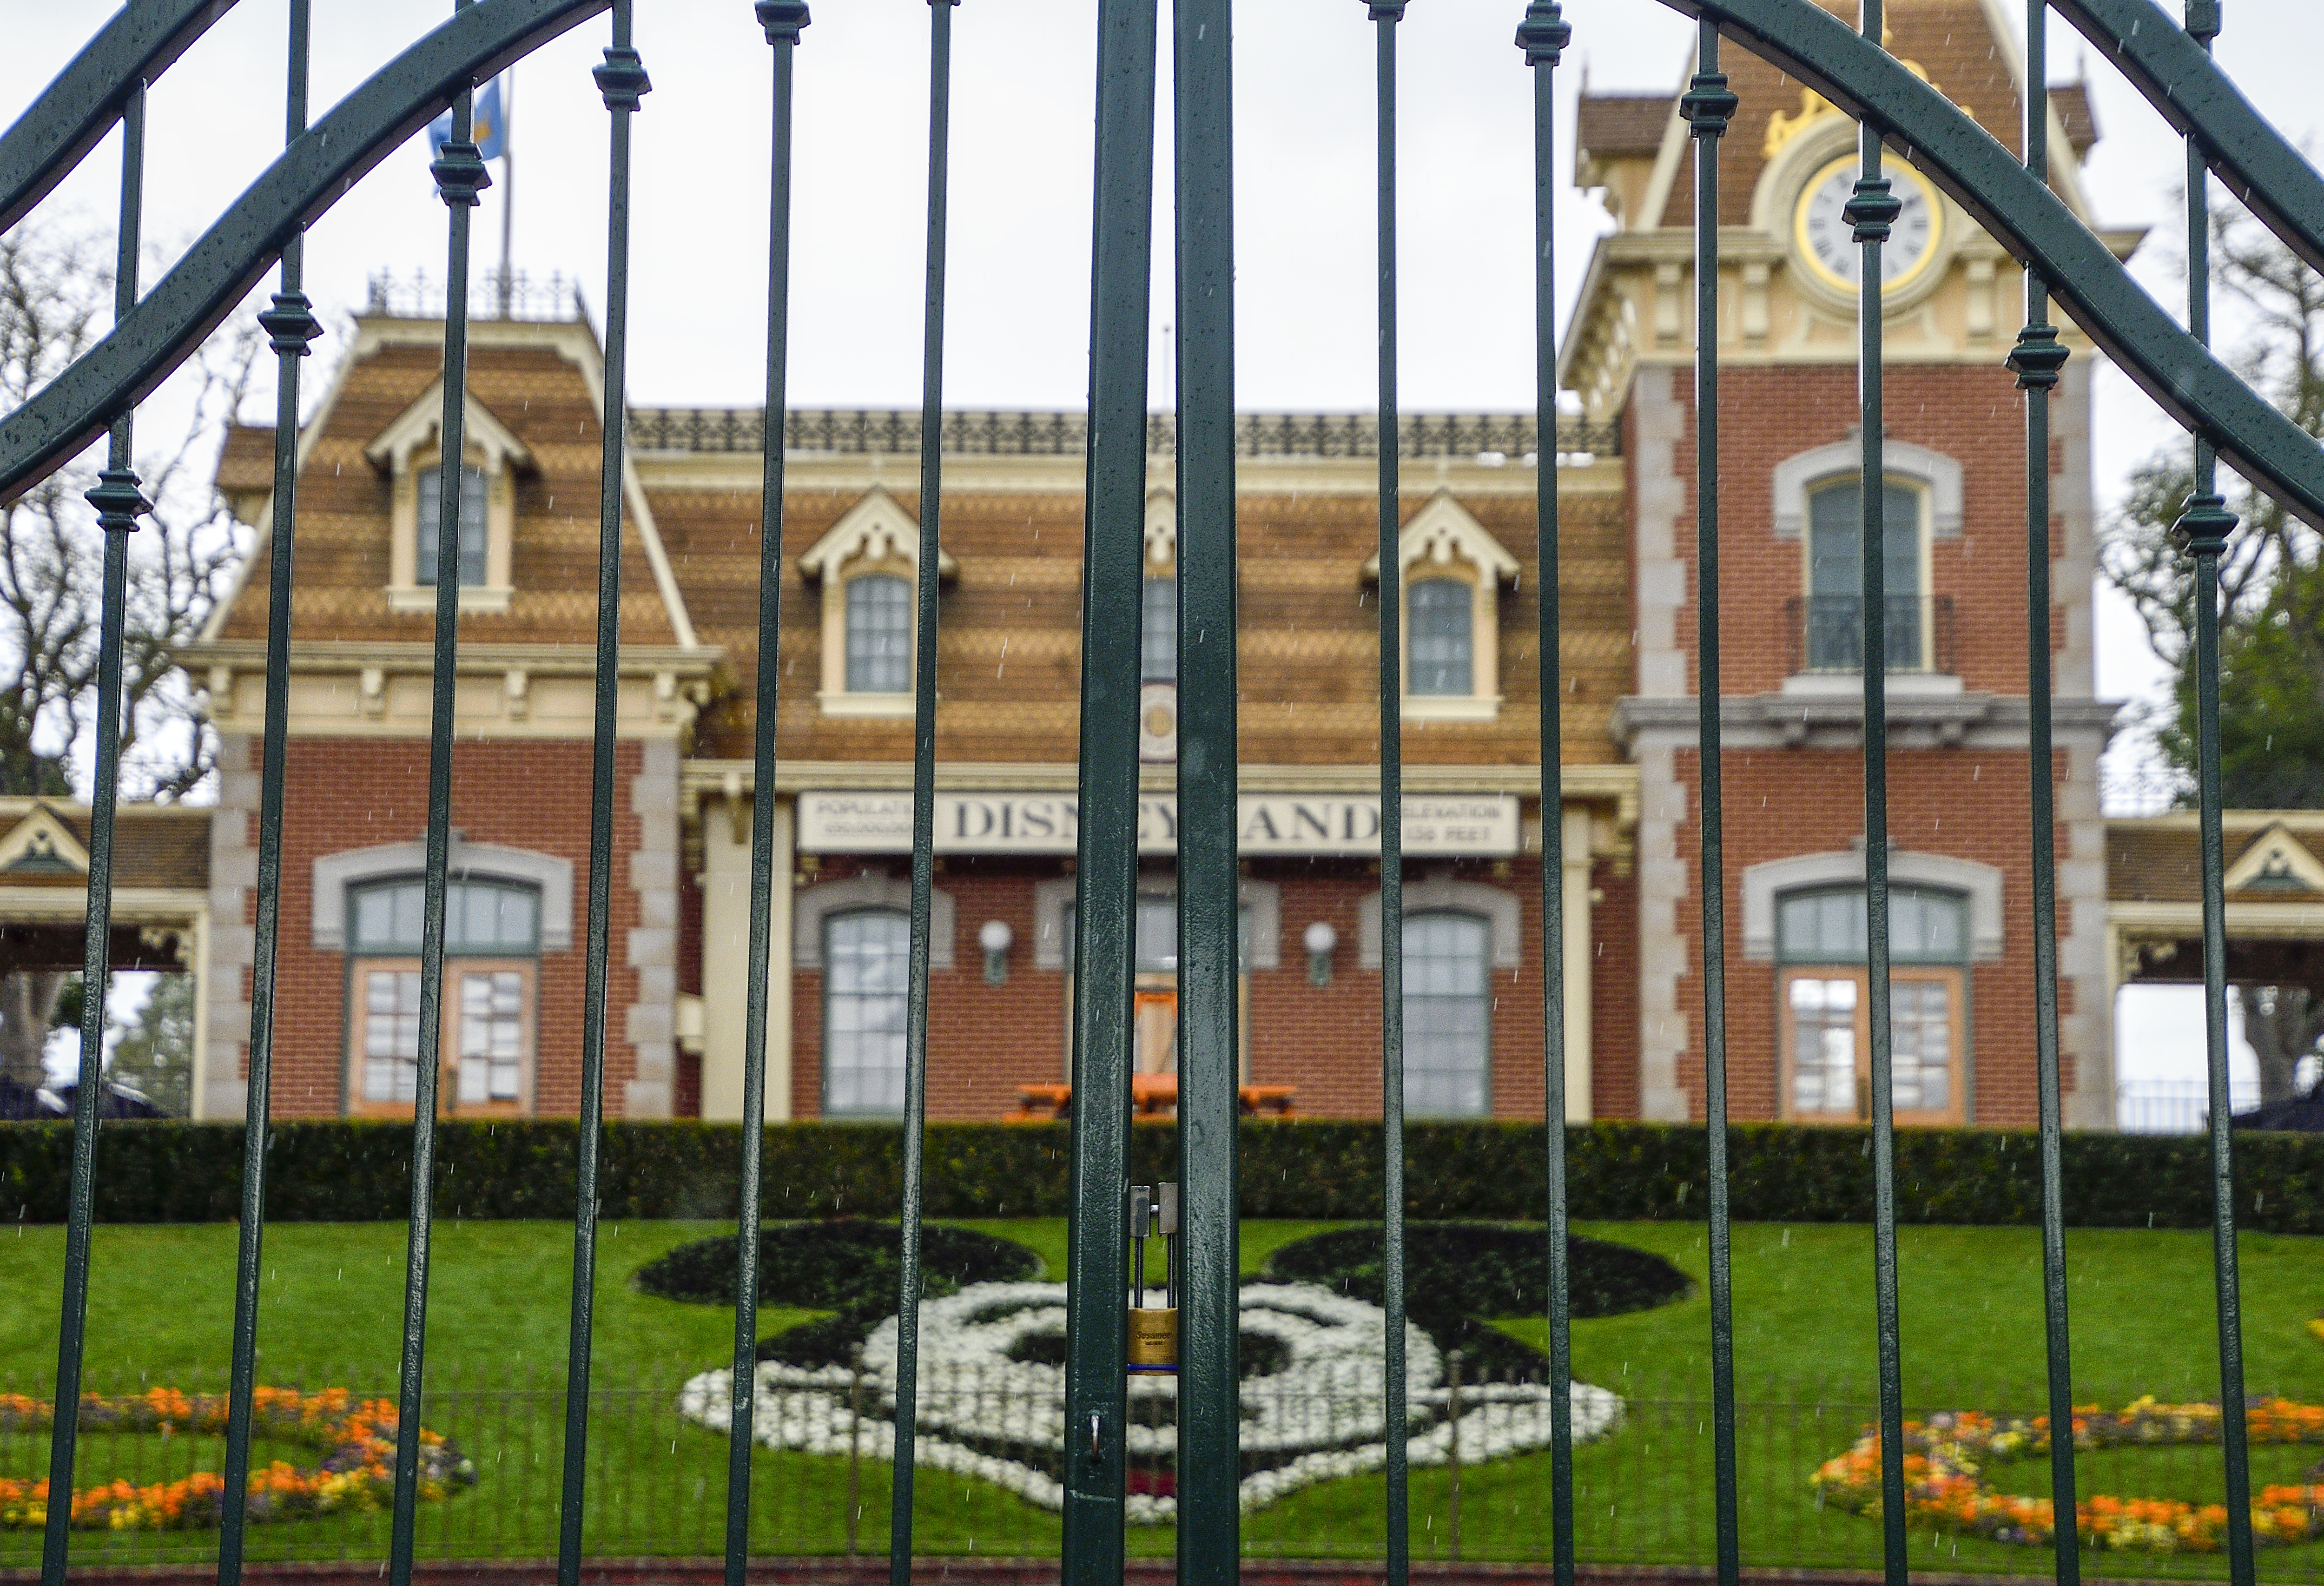 A lock hangs on the center gate between the turnstiles at the entrance to Disneyland in Anaheim, California.